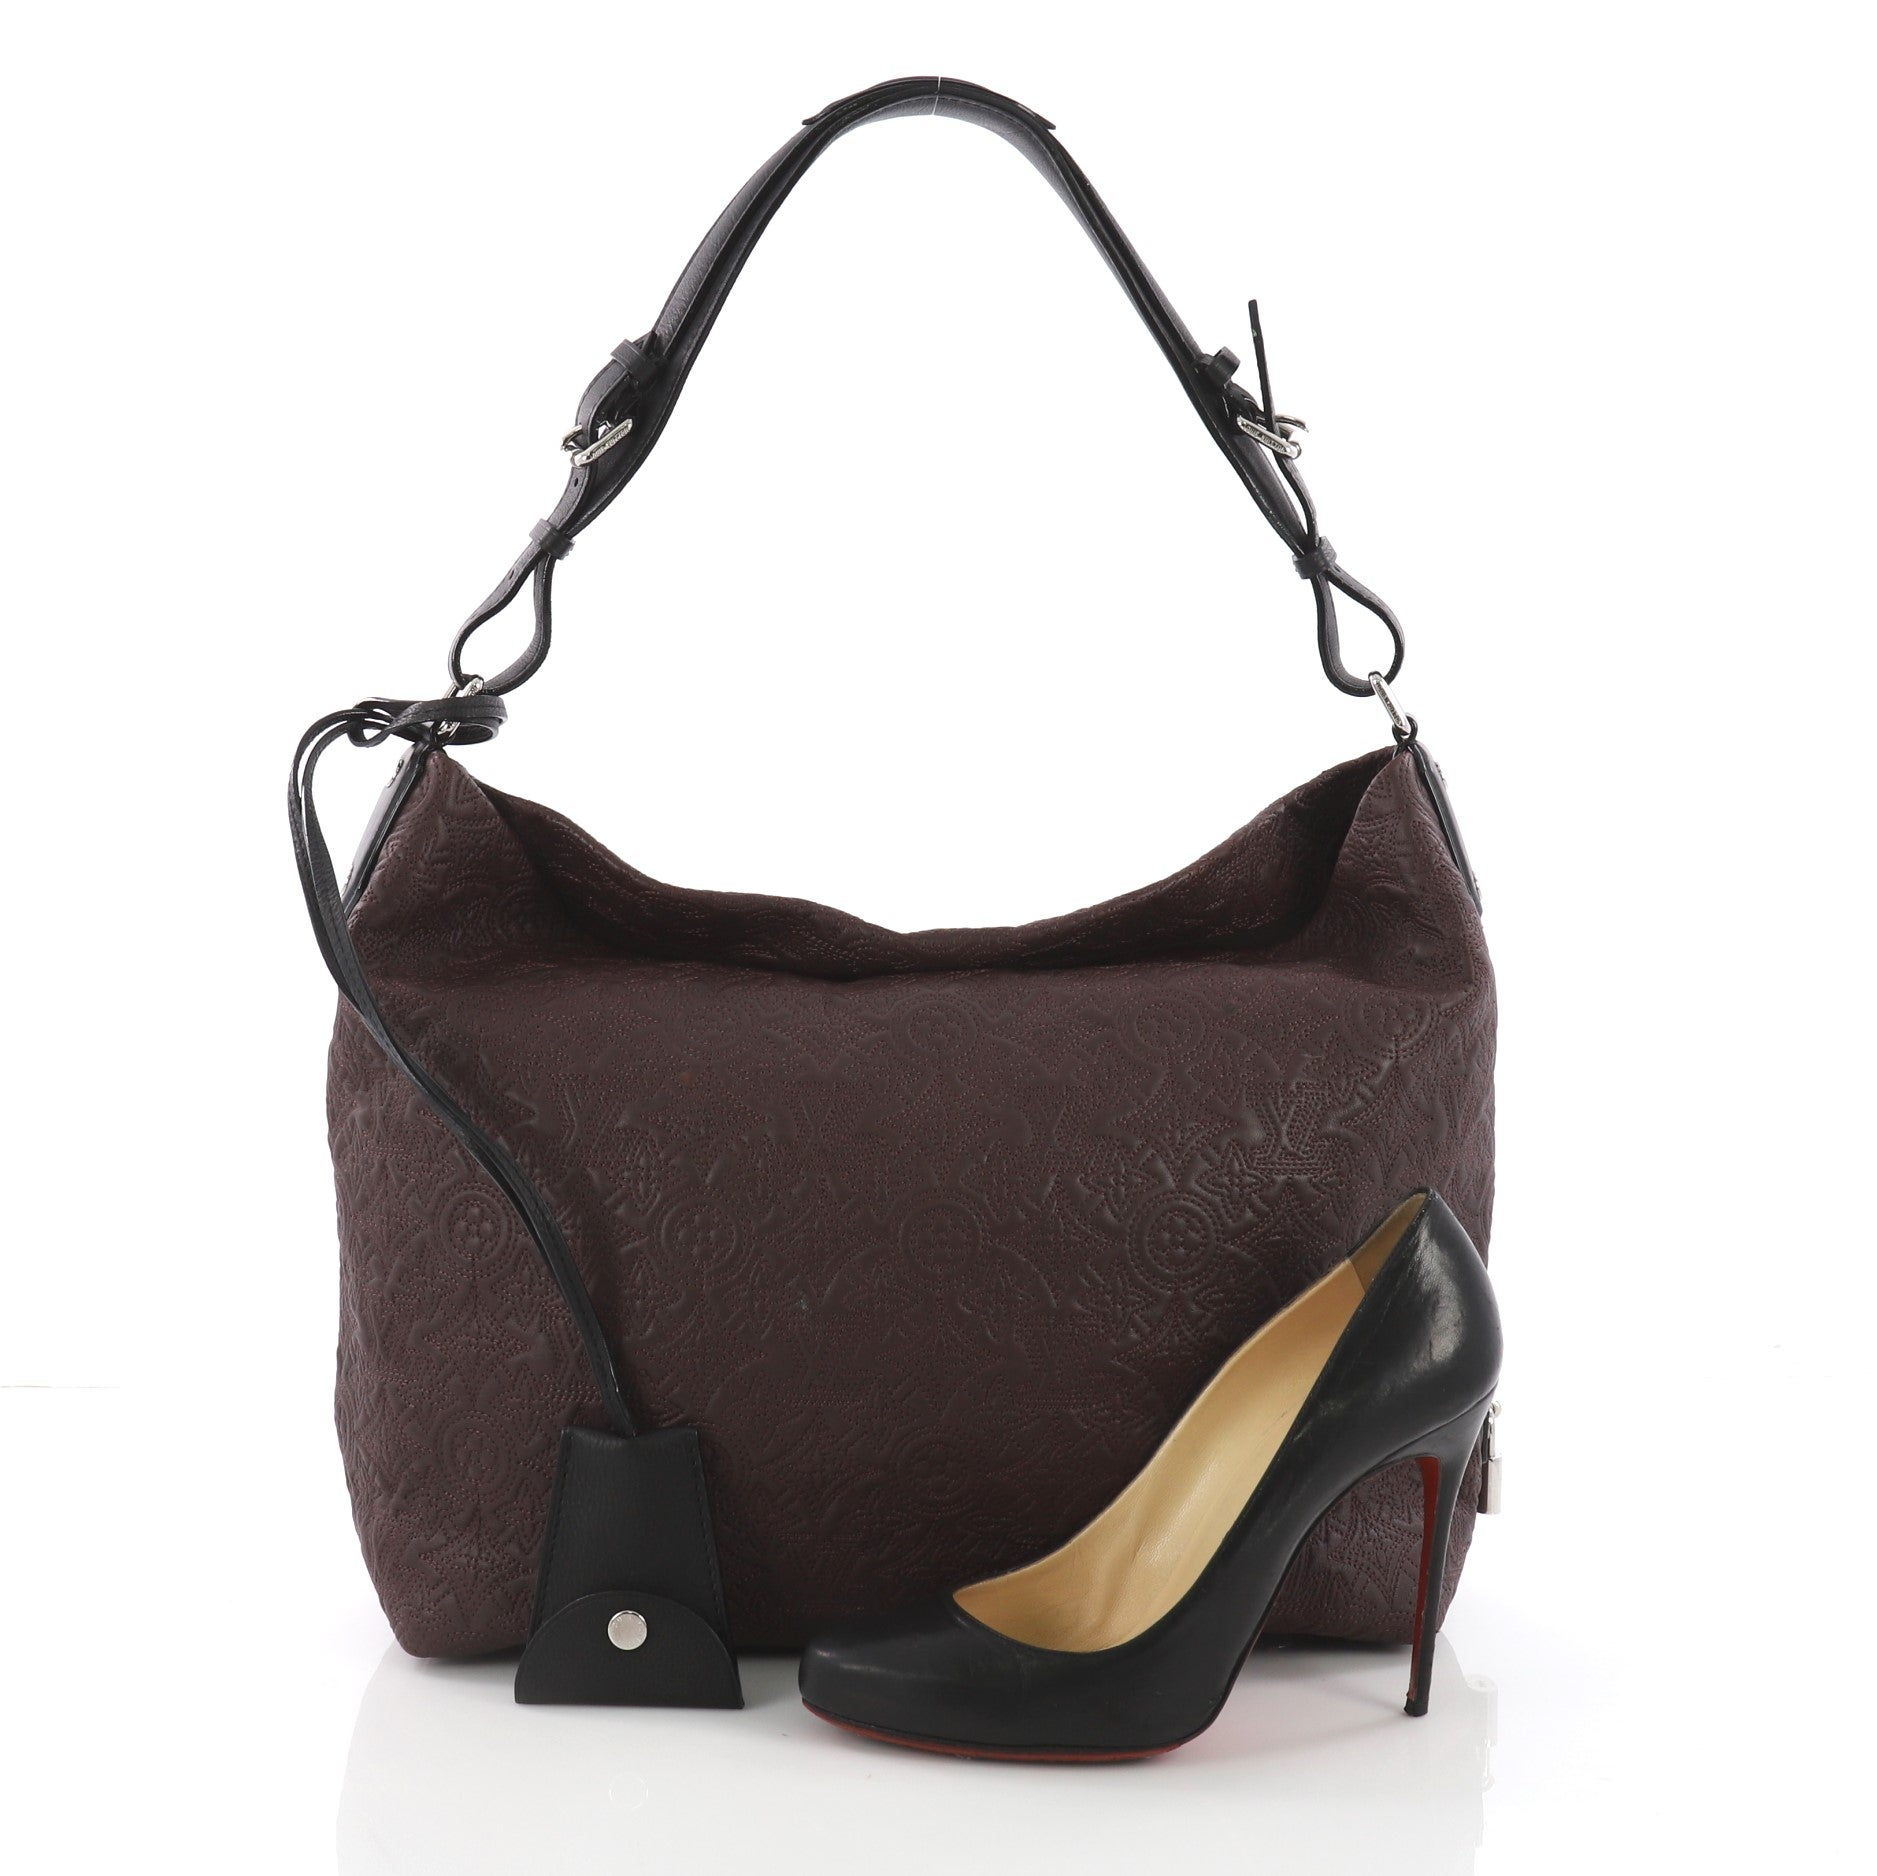 e168fad723bf best Louis Vuitton Brown Leather Hobo Bag image collection